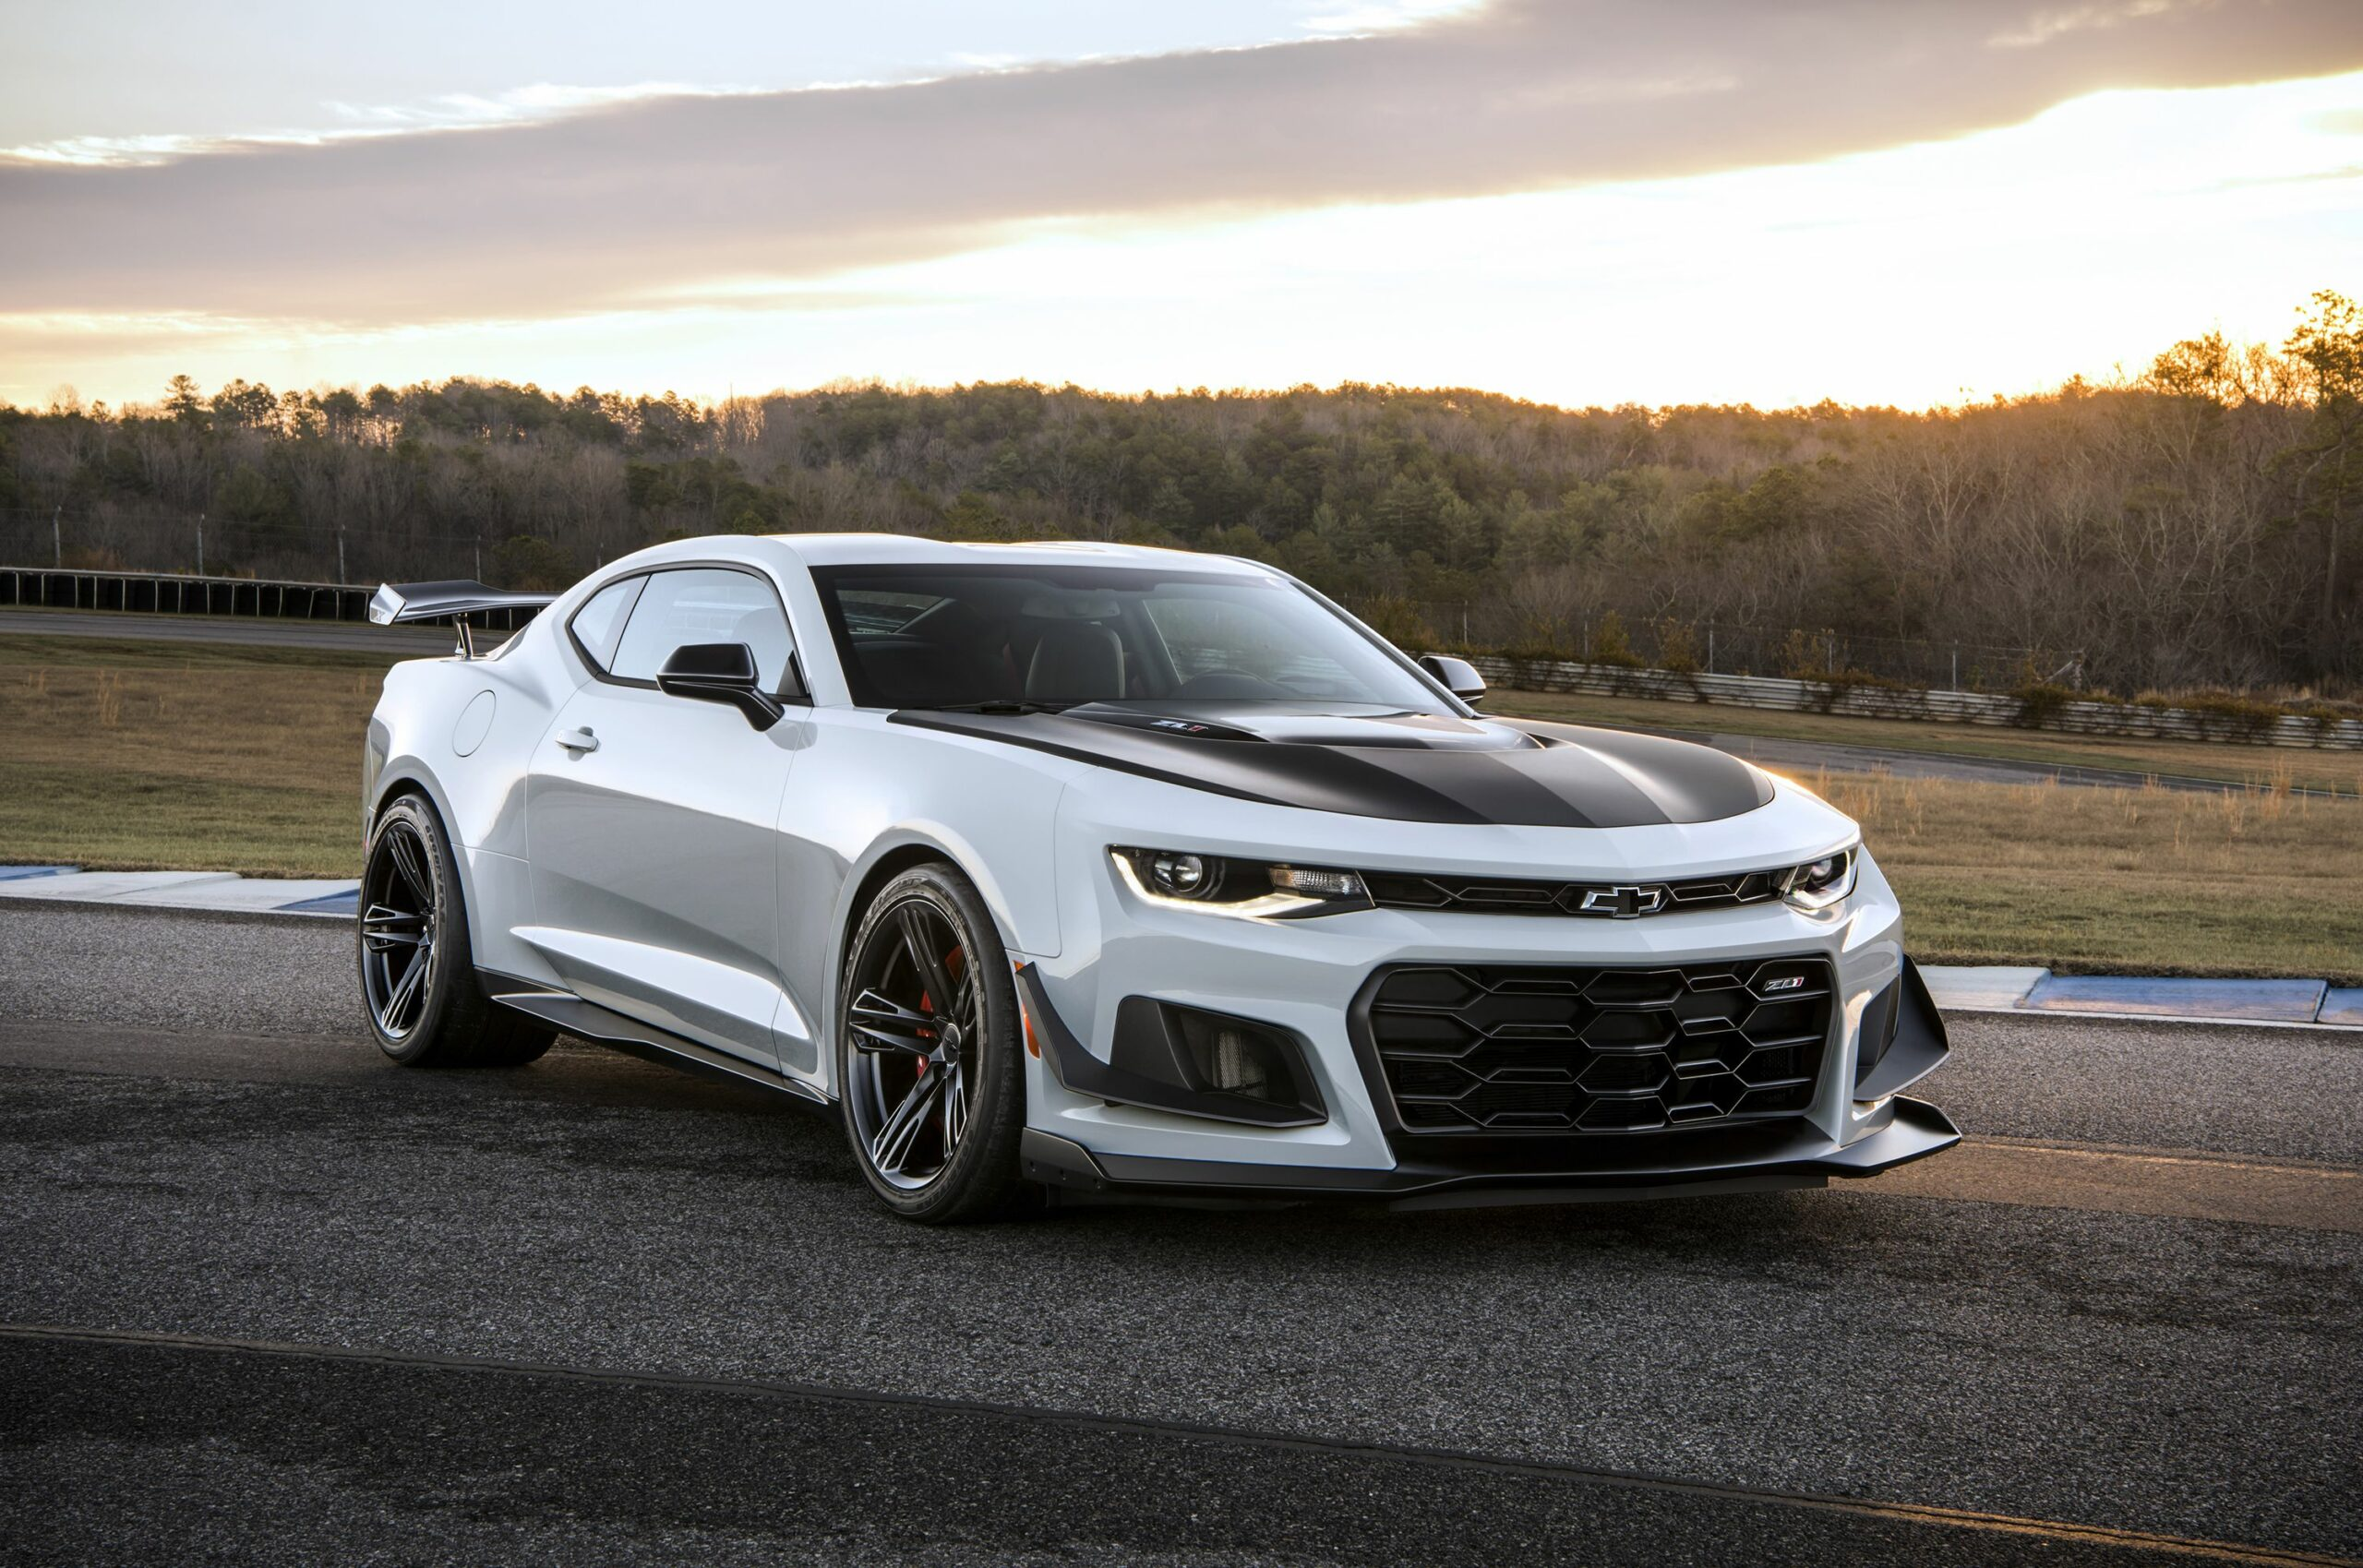 2019-Chevrolet-Camaro-scaled